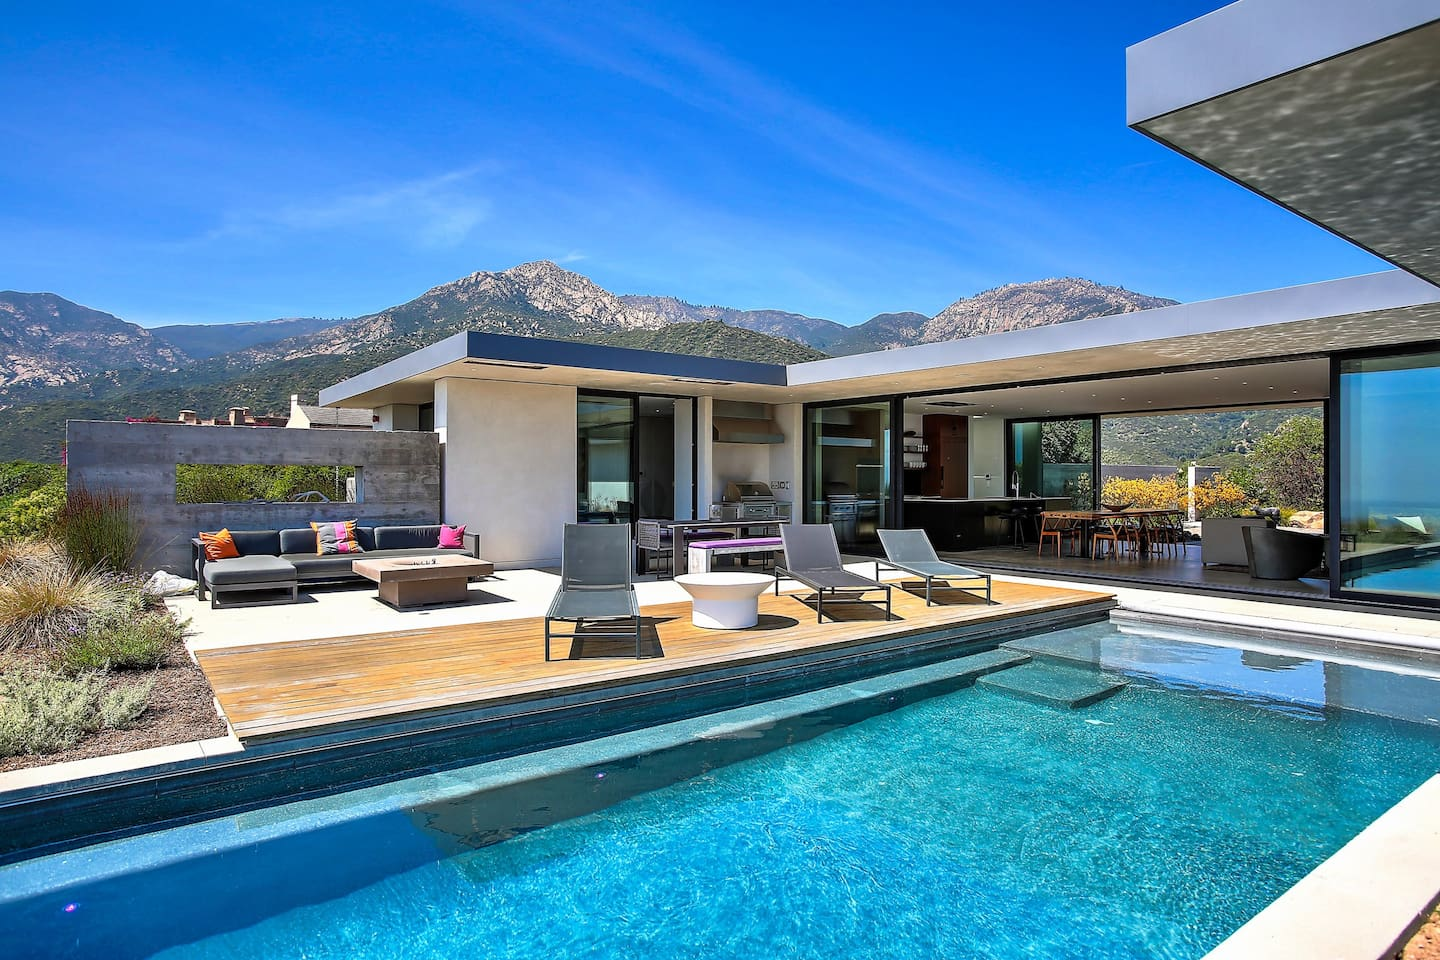 Welcome to Santa Barbara! This home is professionally managed by TurnKey Vacation Rentals.